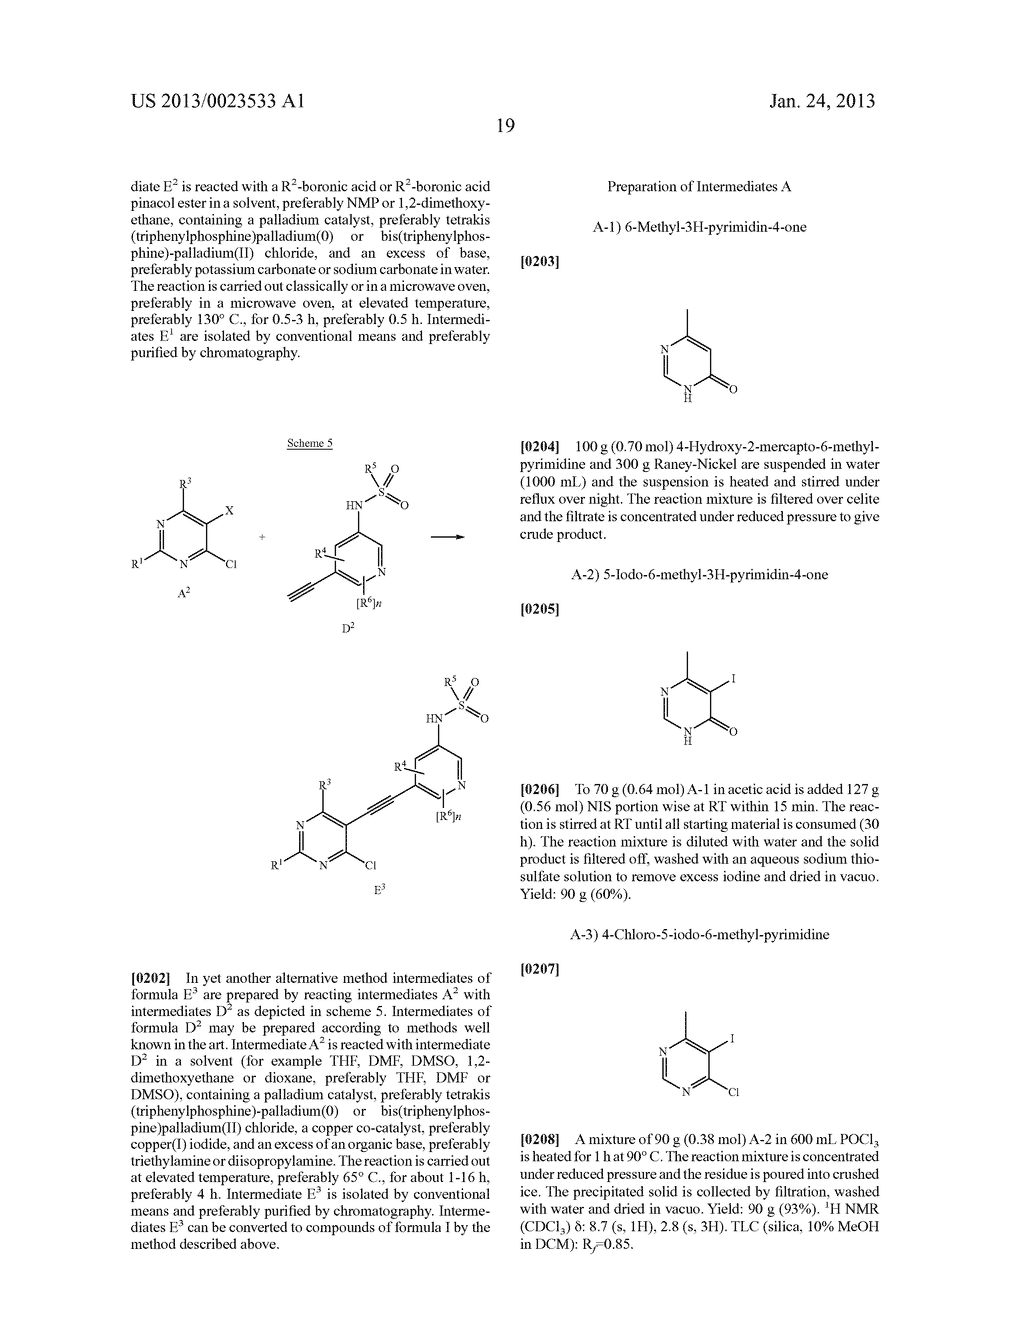 NEW 5-ALKYNYL-PYRIDINES - diagram, schematic, and image 20